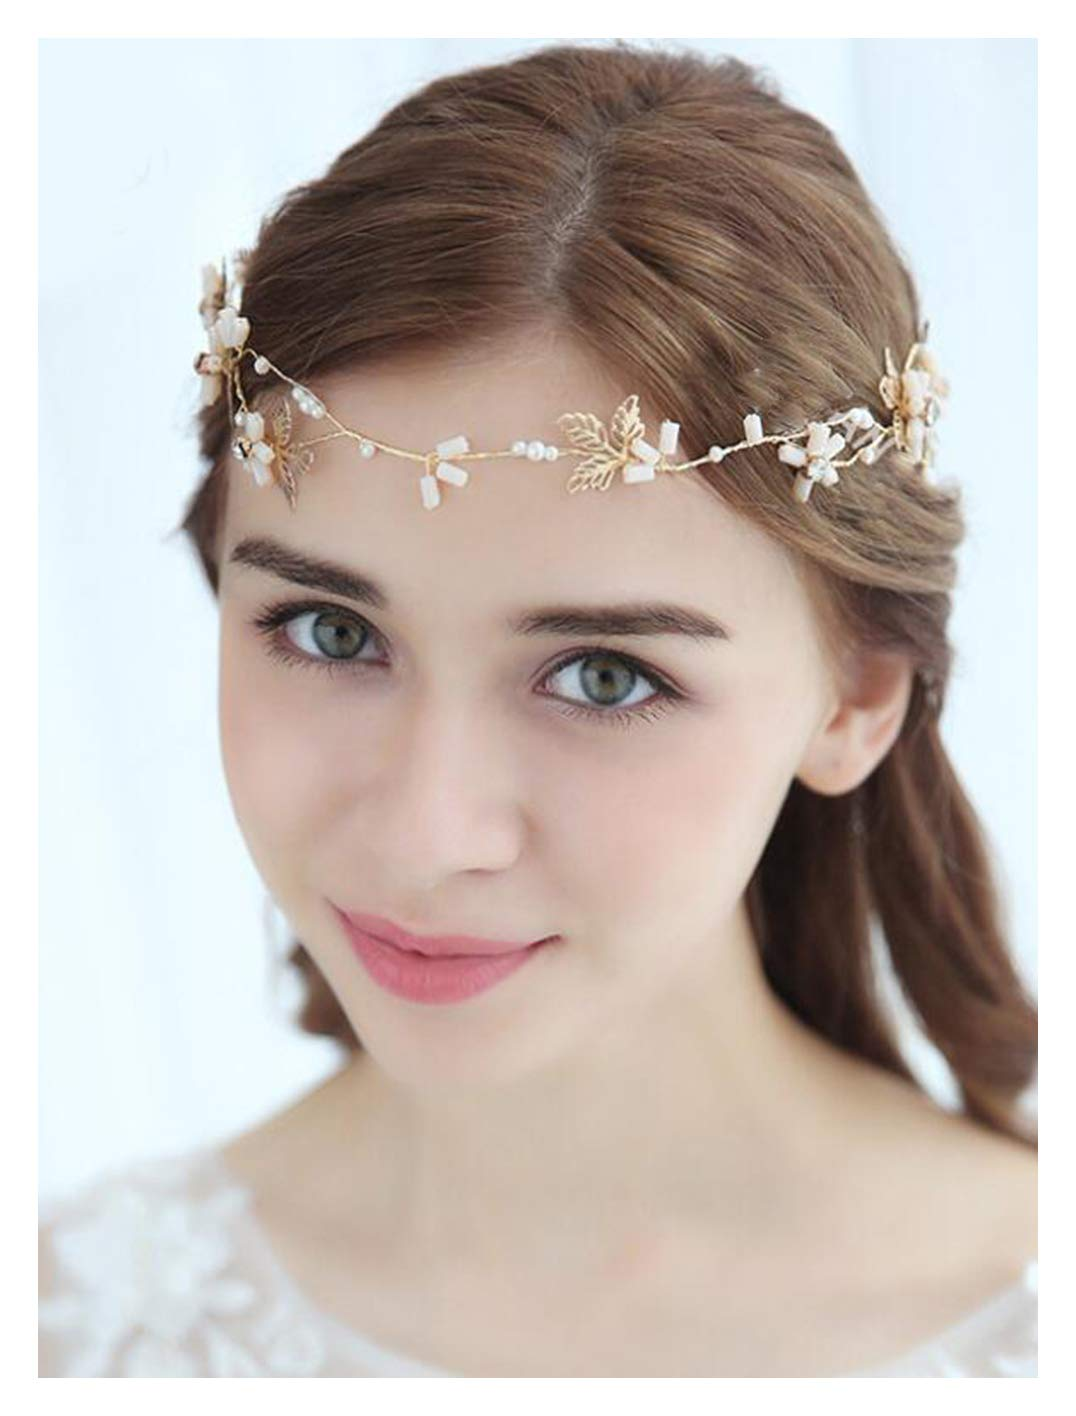 Chargances Bride Floral Gold Hair Pin Gold Headband Wedding Hair Clip Crystal Hair Pin Rhinestone Hair Pin Wedding Hair Accessory HairPiece Boho Delicate Handmade Gold Jewelry Gift for Women and Girls